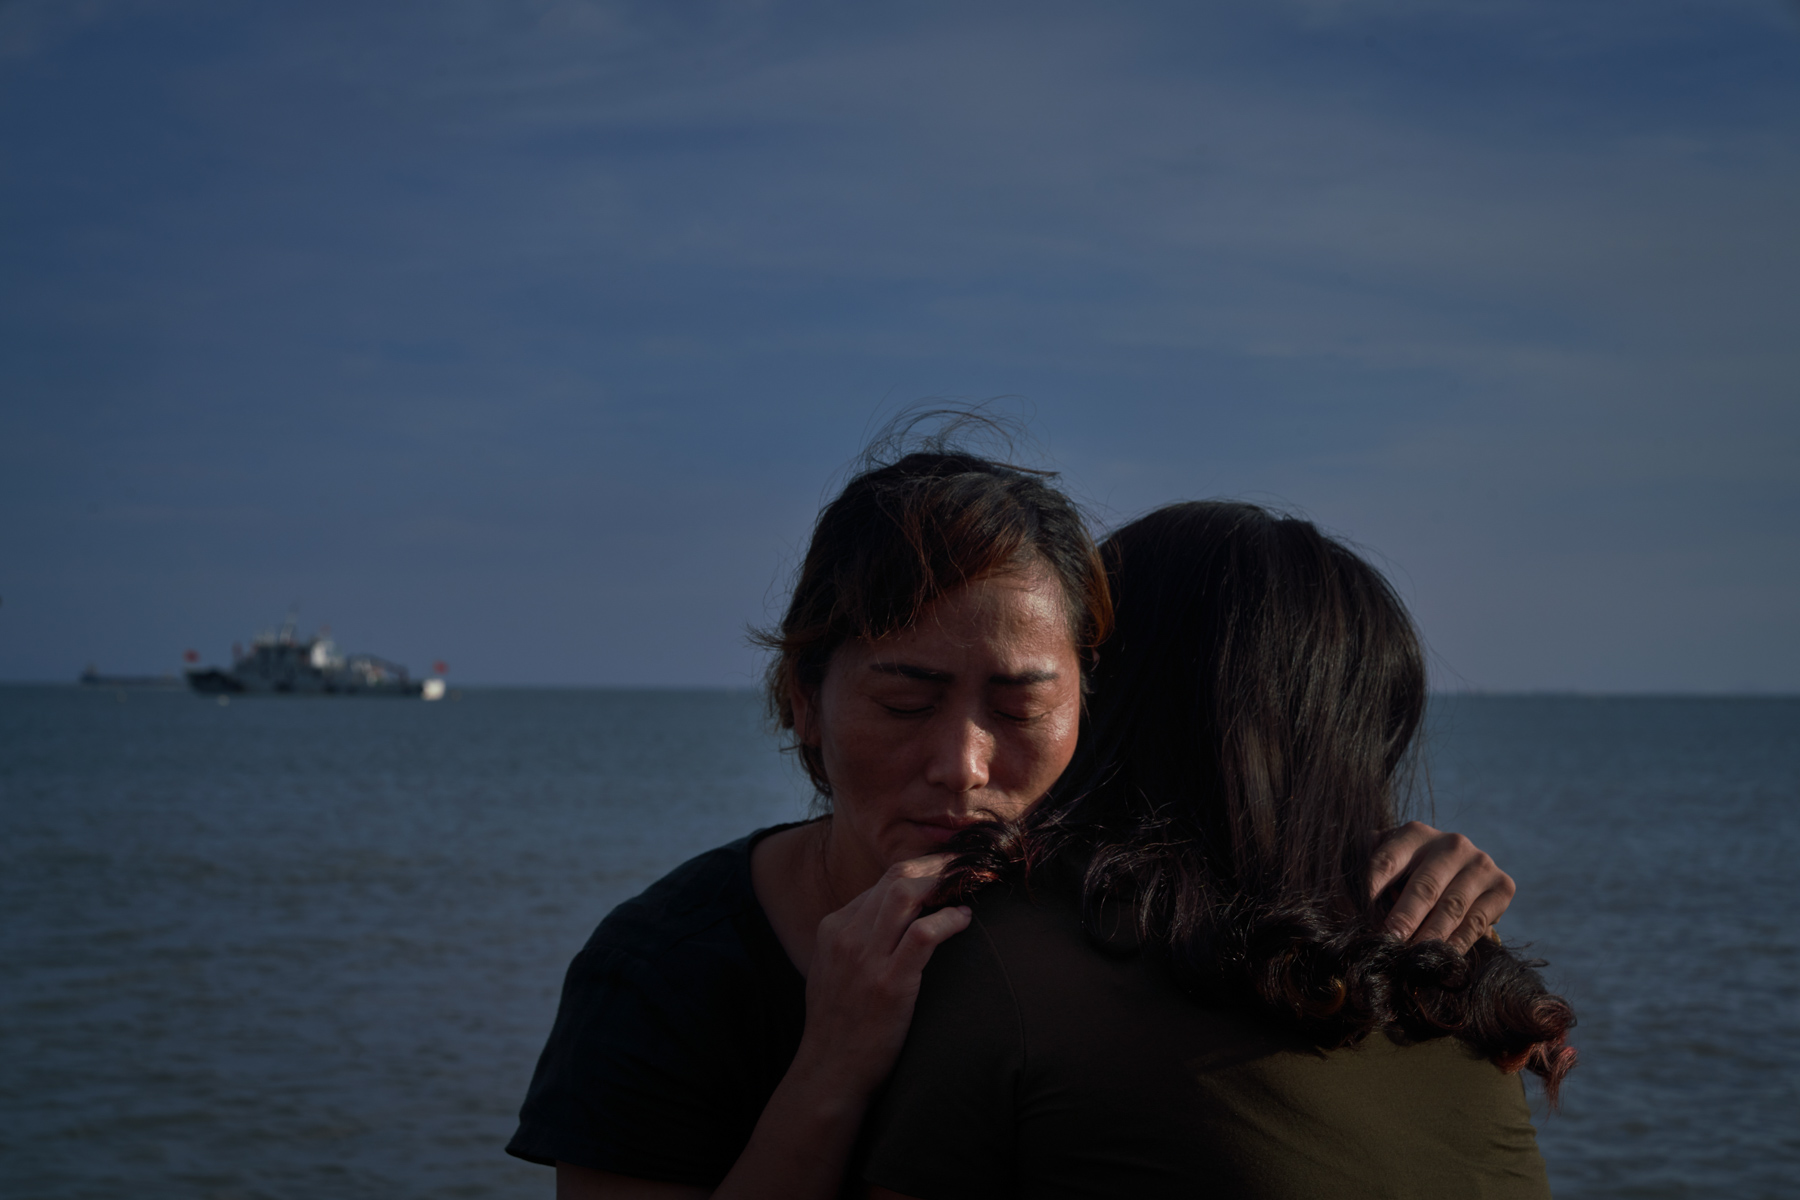 """Two women abandoned as infants hug each other, in Putian, Fujian province, June 9. Since the 1960s, thousands of infant girls have been sold from Changle to Putian, a wealthier part of Fujian 60 miles away. Some raised these girls as their own, but others treated them like maids, or """"tongyangxi,"""" pre-adolescent daughters raised to be married to their """"brothers."""" The centuries-old practice was revived between the late 1970s and 2016, when China's one-child policy was in effect. (Liang Yingfei/Ciaxin)"""